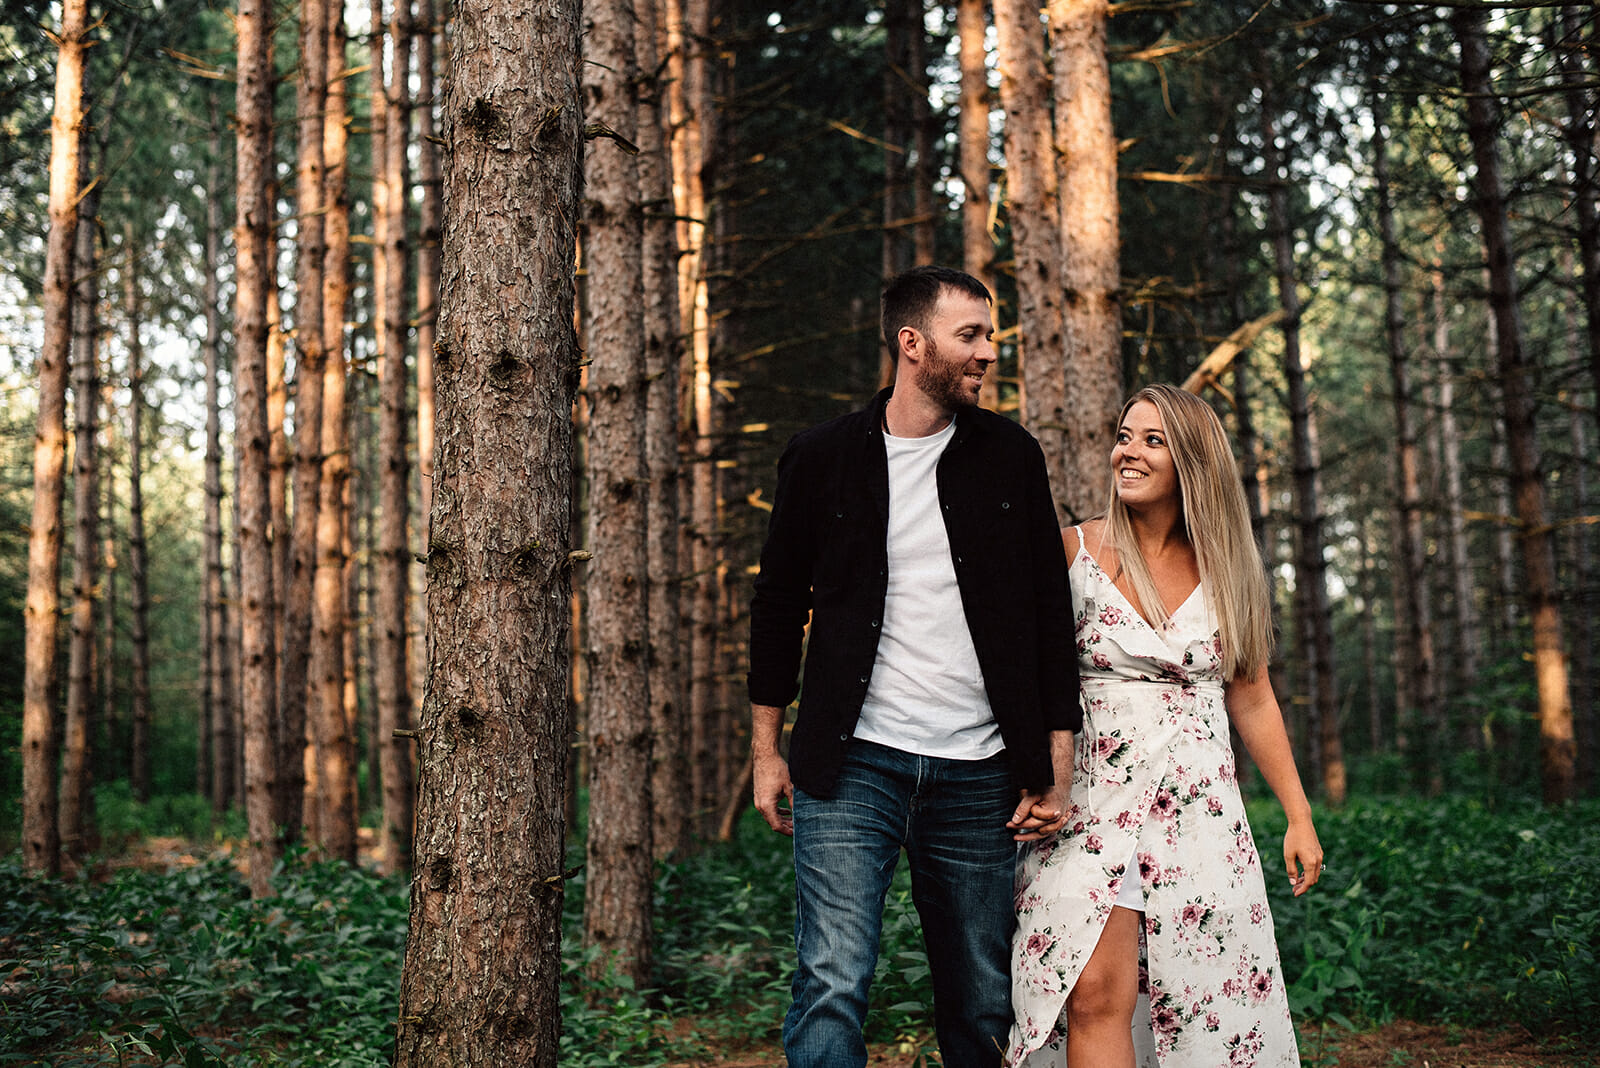 engaged couple walks through the trees holding hands